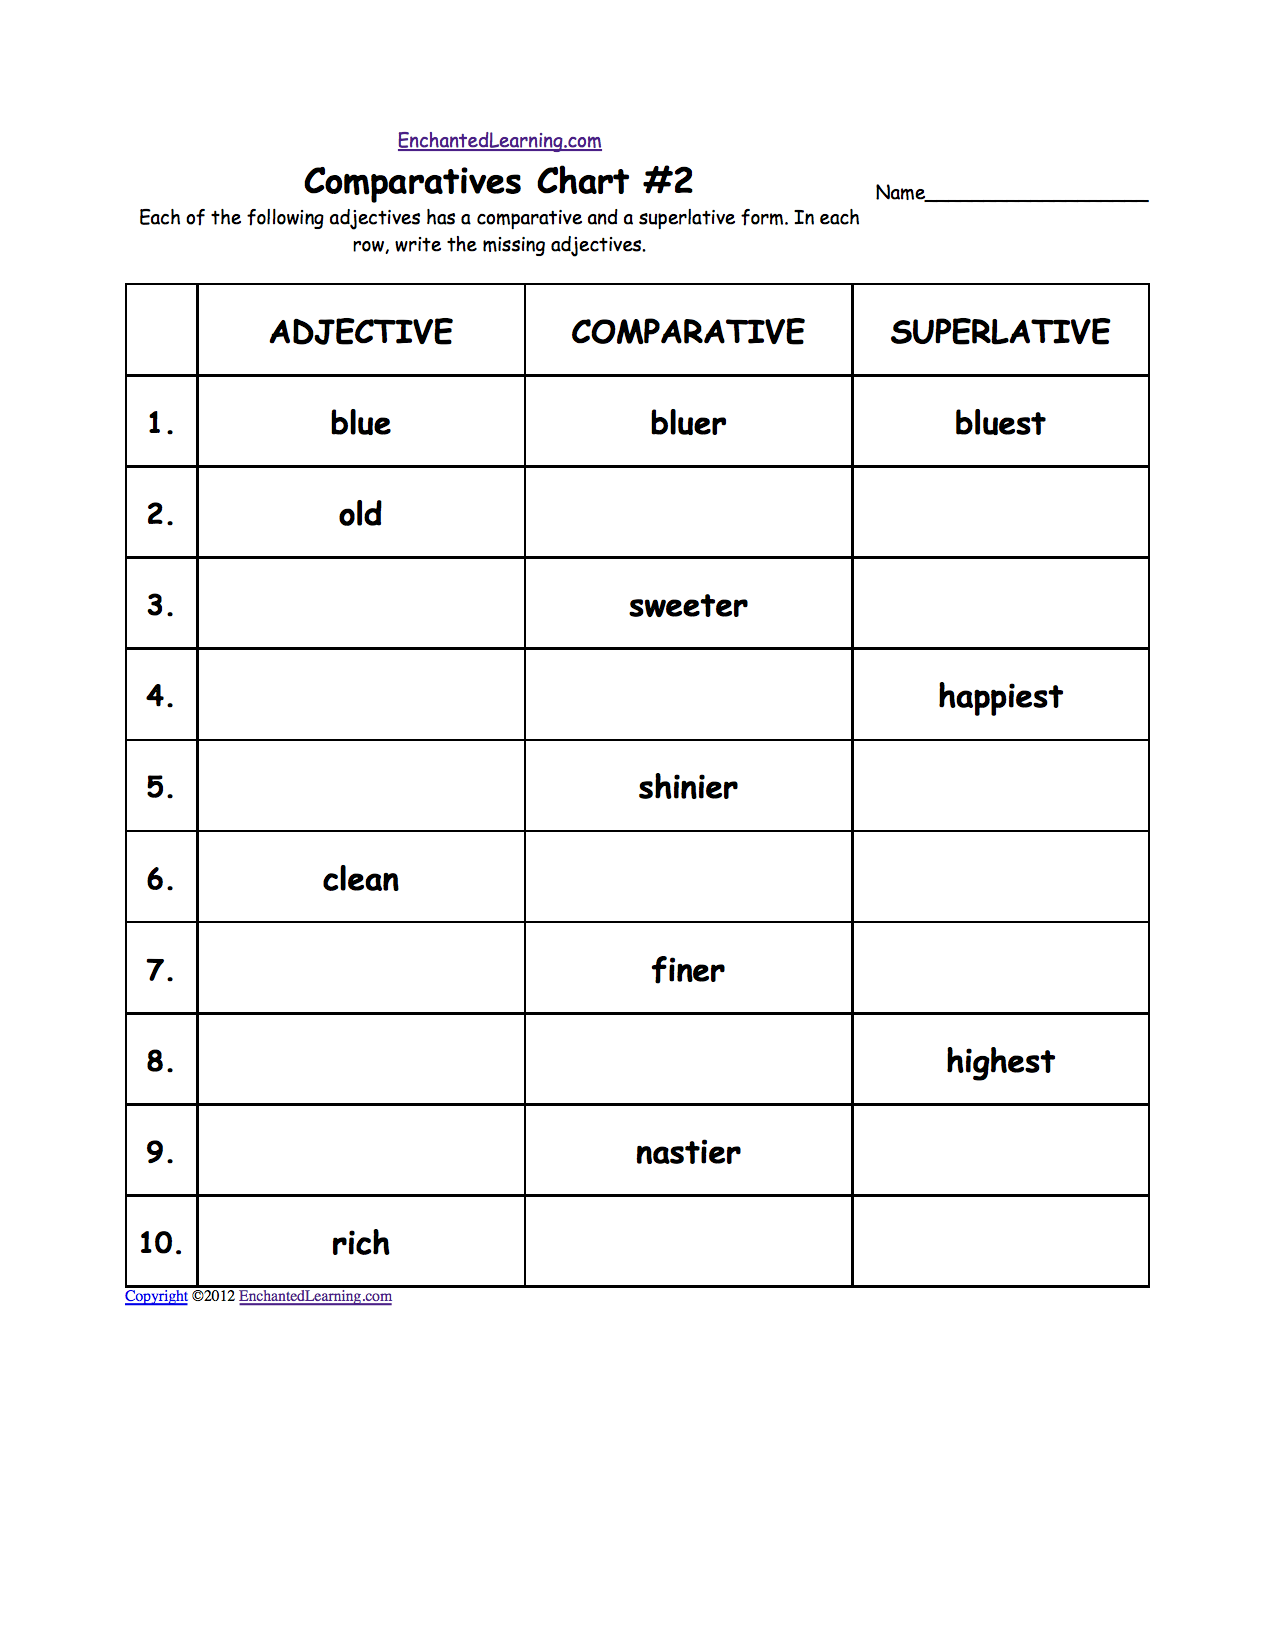 Worksheet Complete List Of Adjectives comparative and superlative adjectives enchantedlearning com each of the following has a form in row write missing blue o